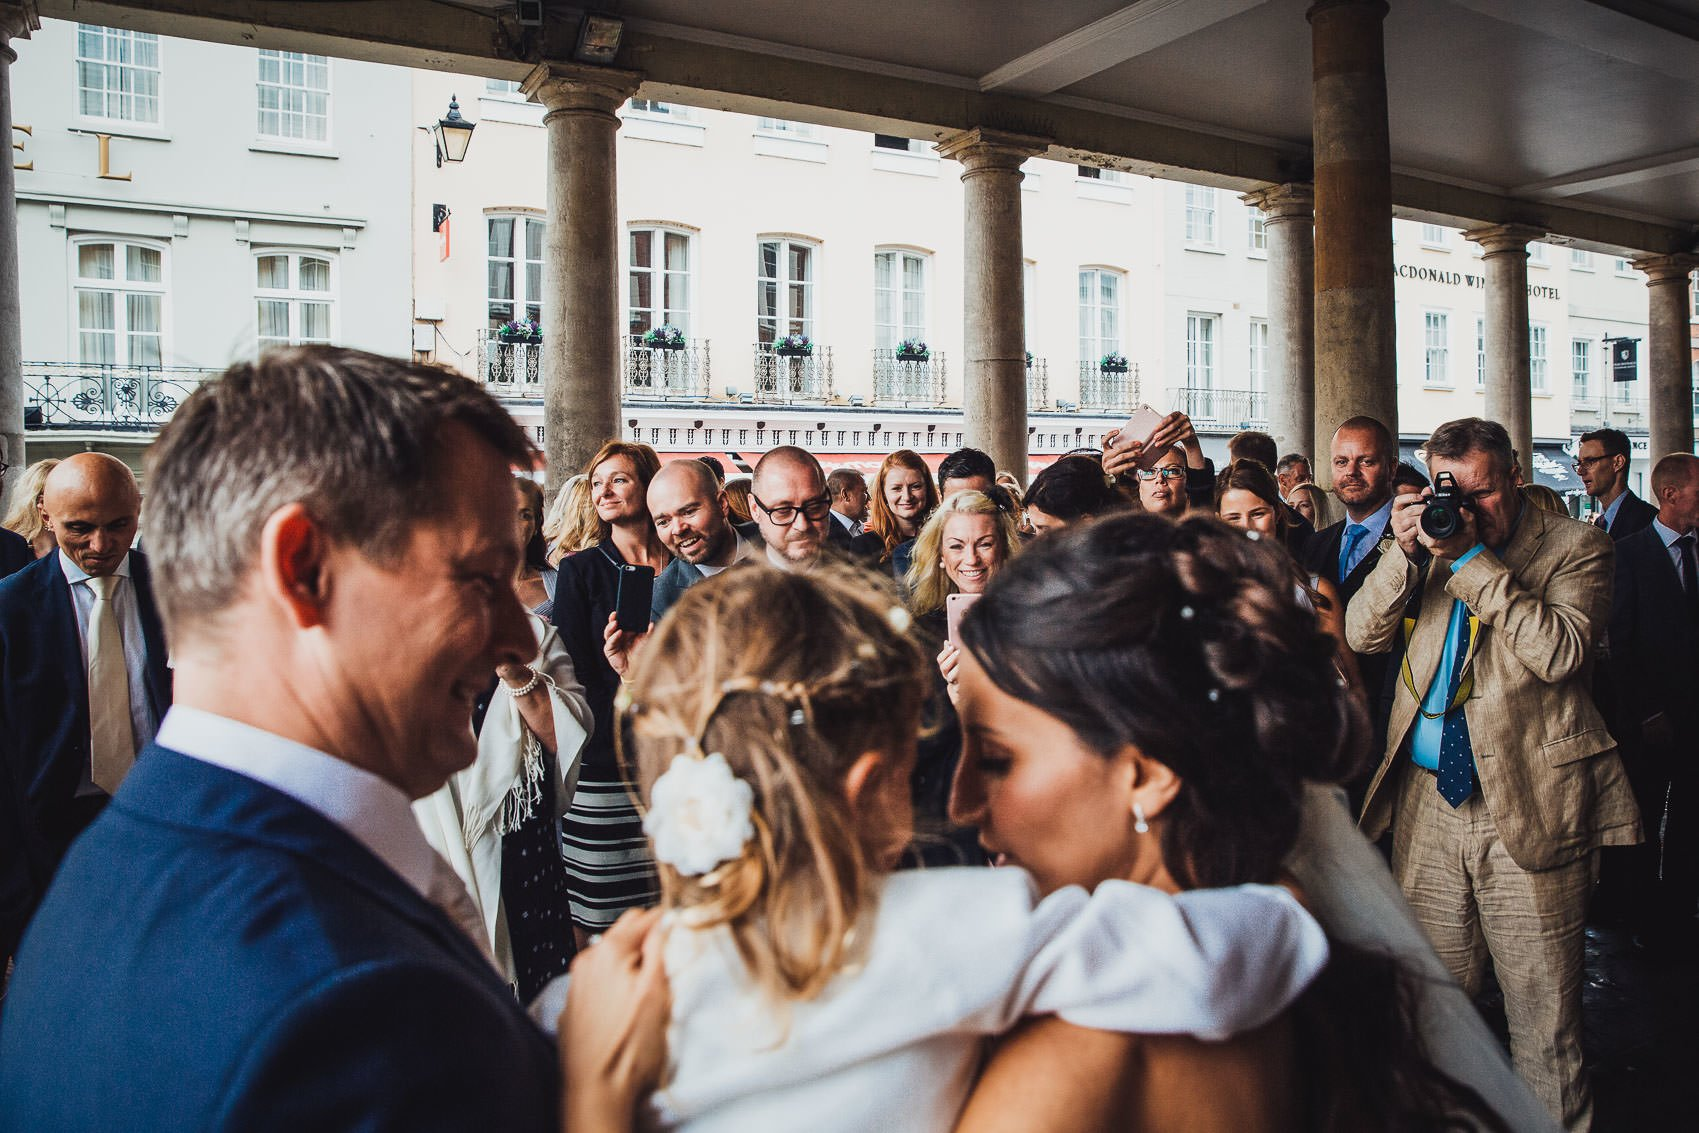 Windsor Guildhall Wedding Photography - Magnus & Tania 23